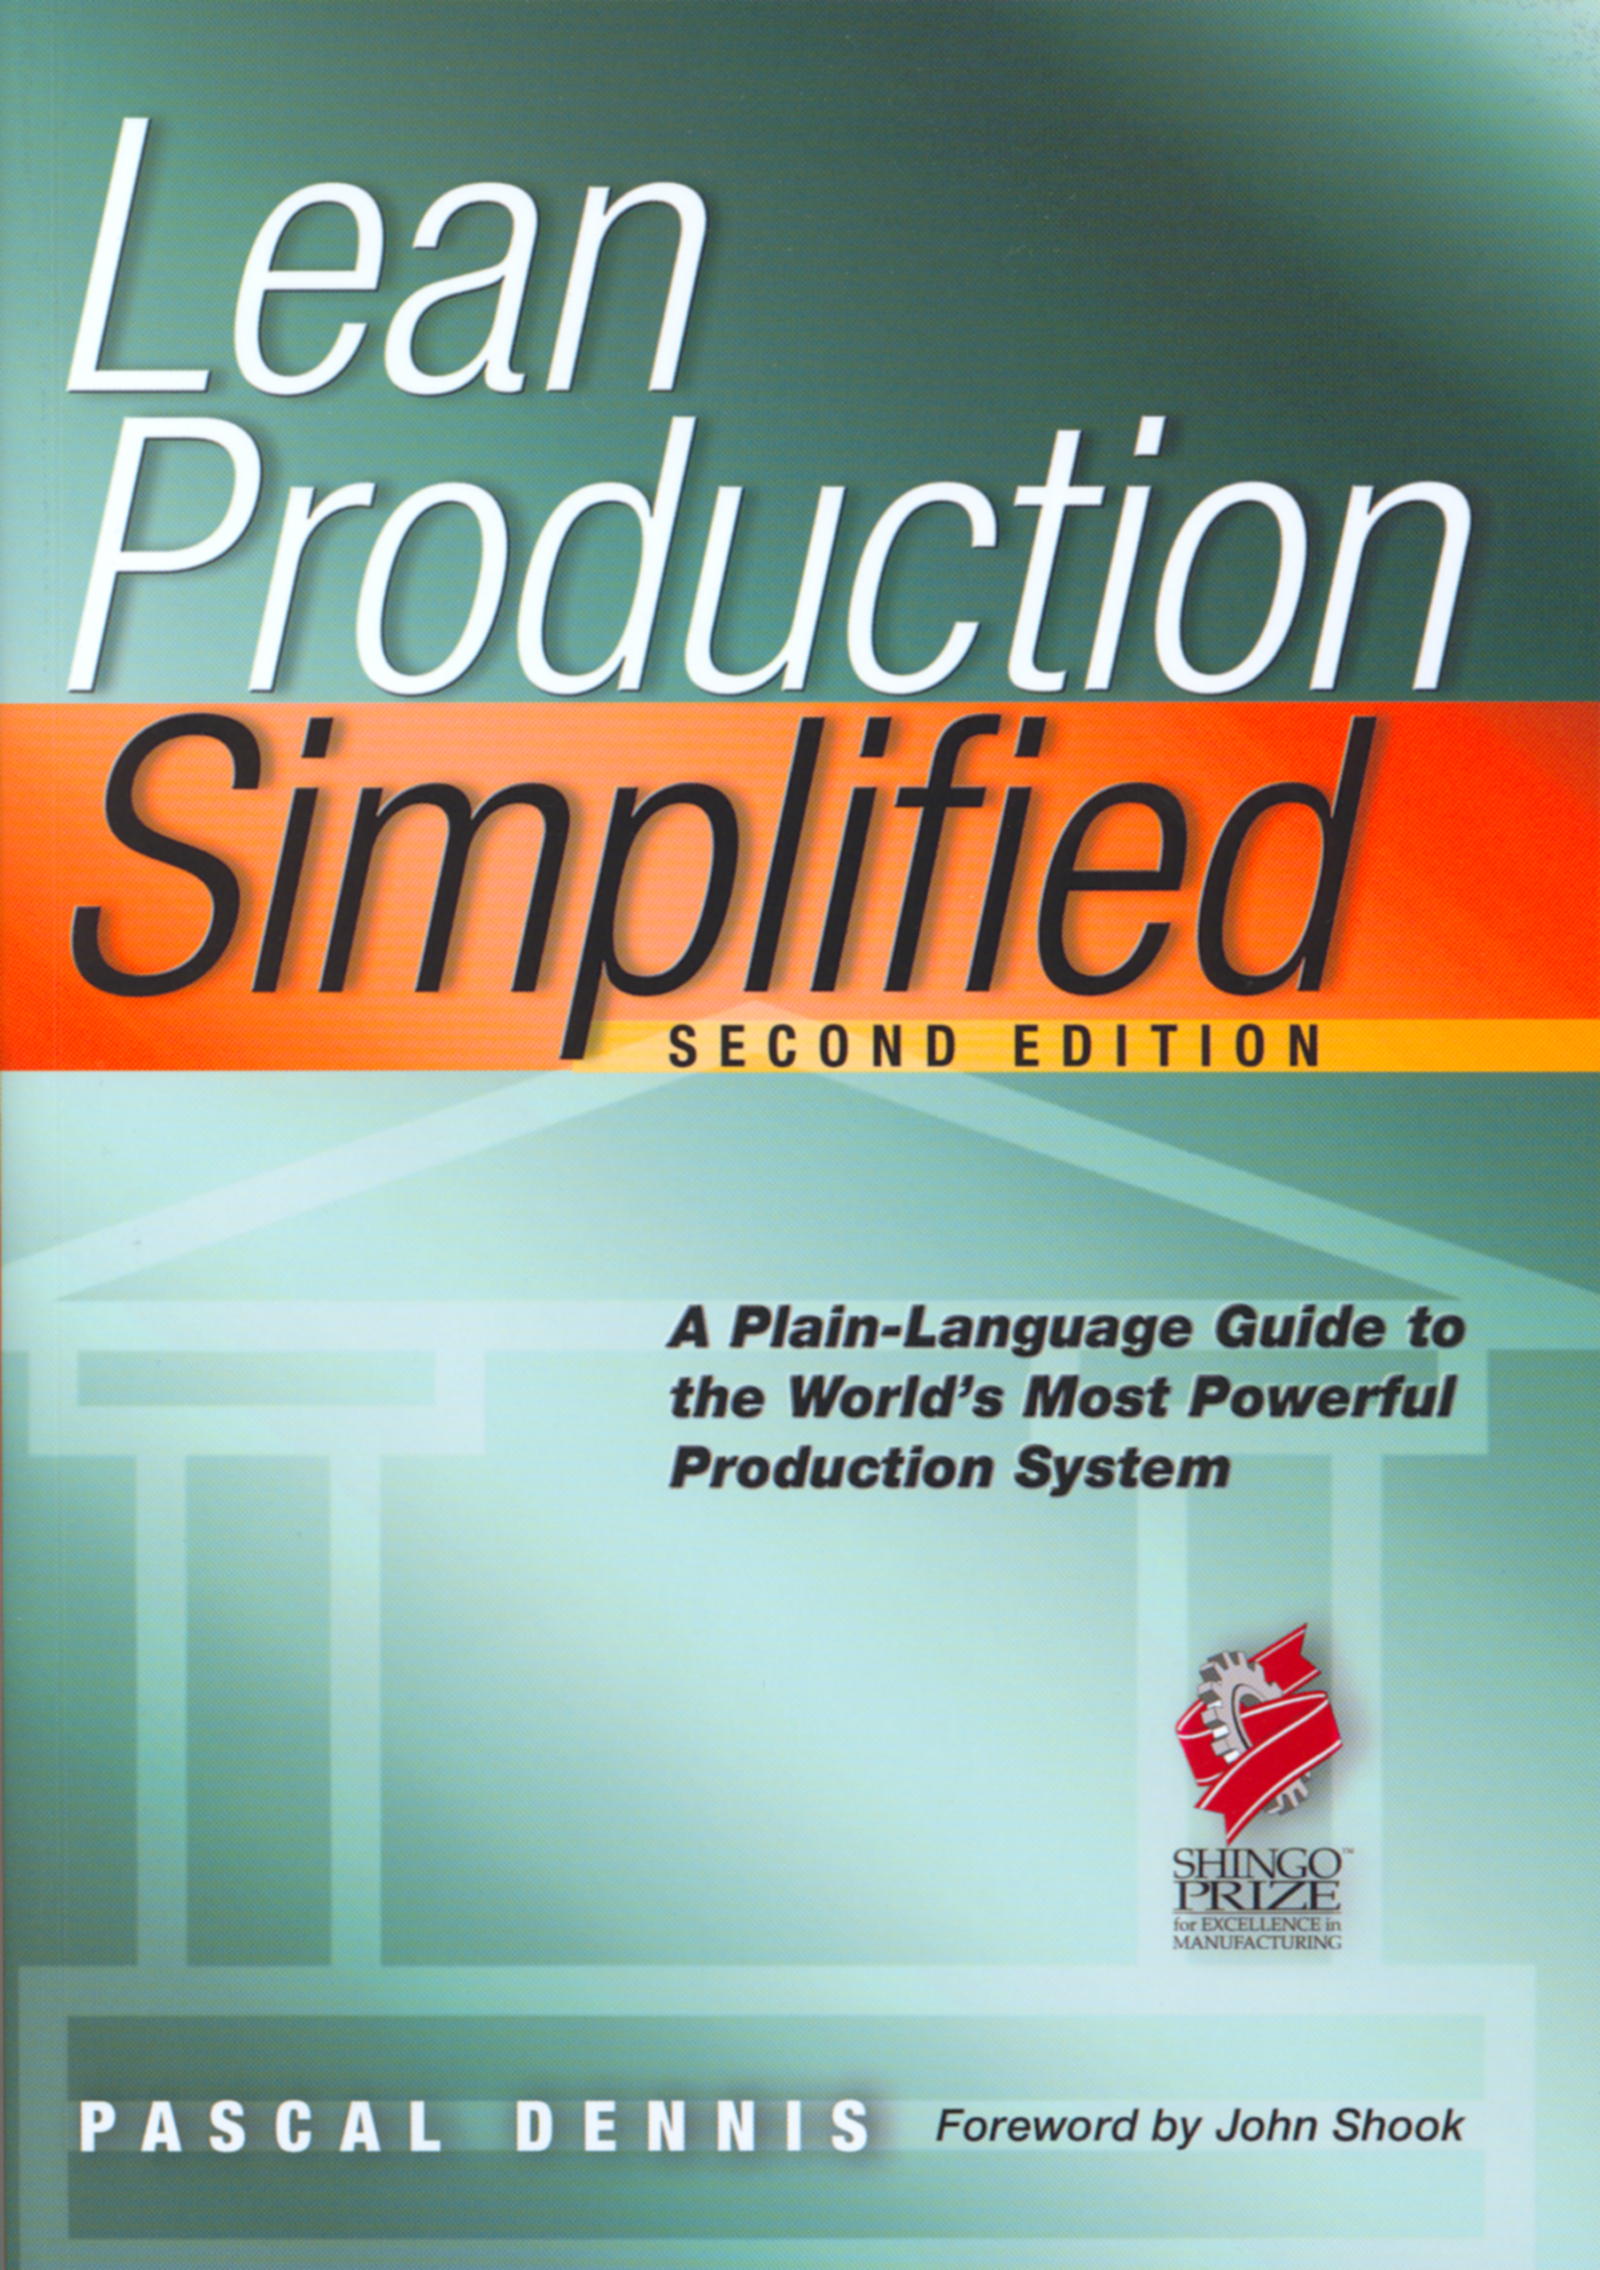 Download Ebook Lean Production Simplified (2nd ed.) by Pascal Dennis Pdf